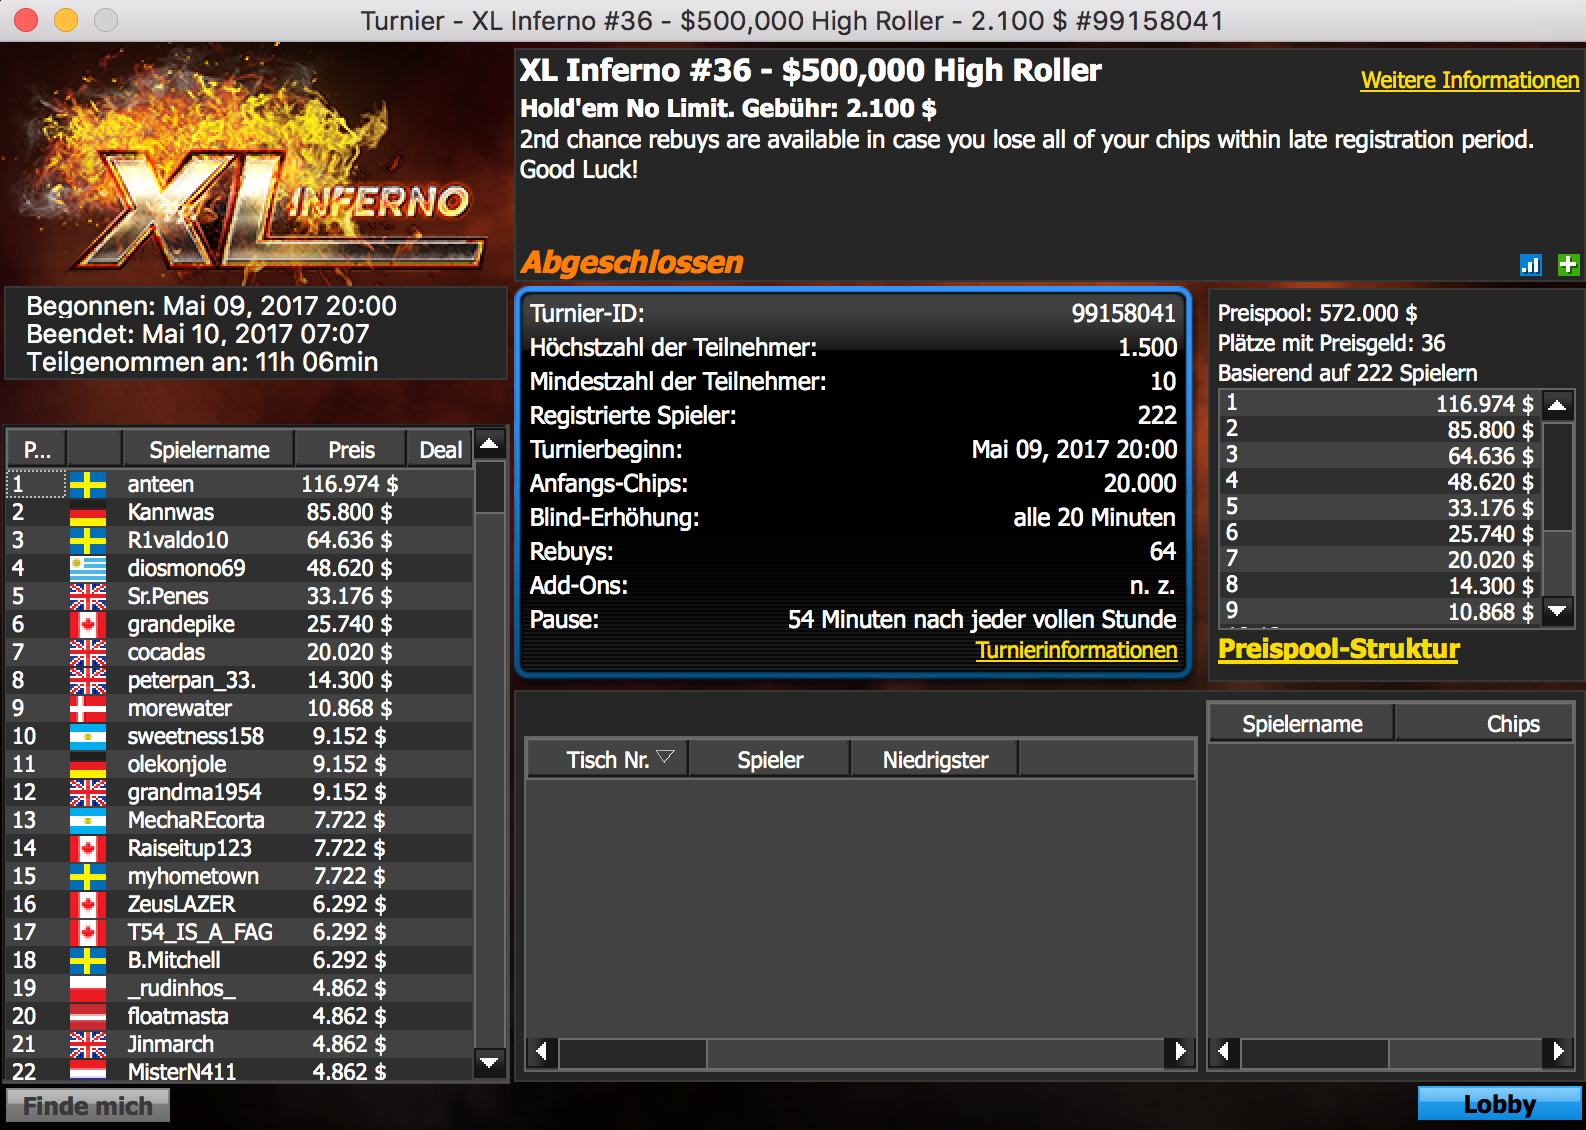 XL_Inferno_HighRoller#36